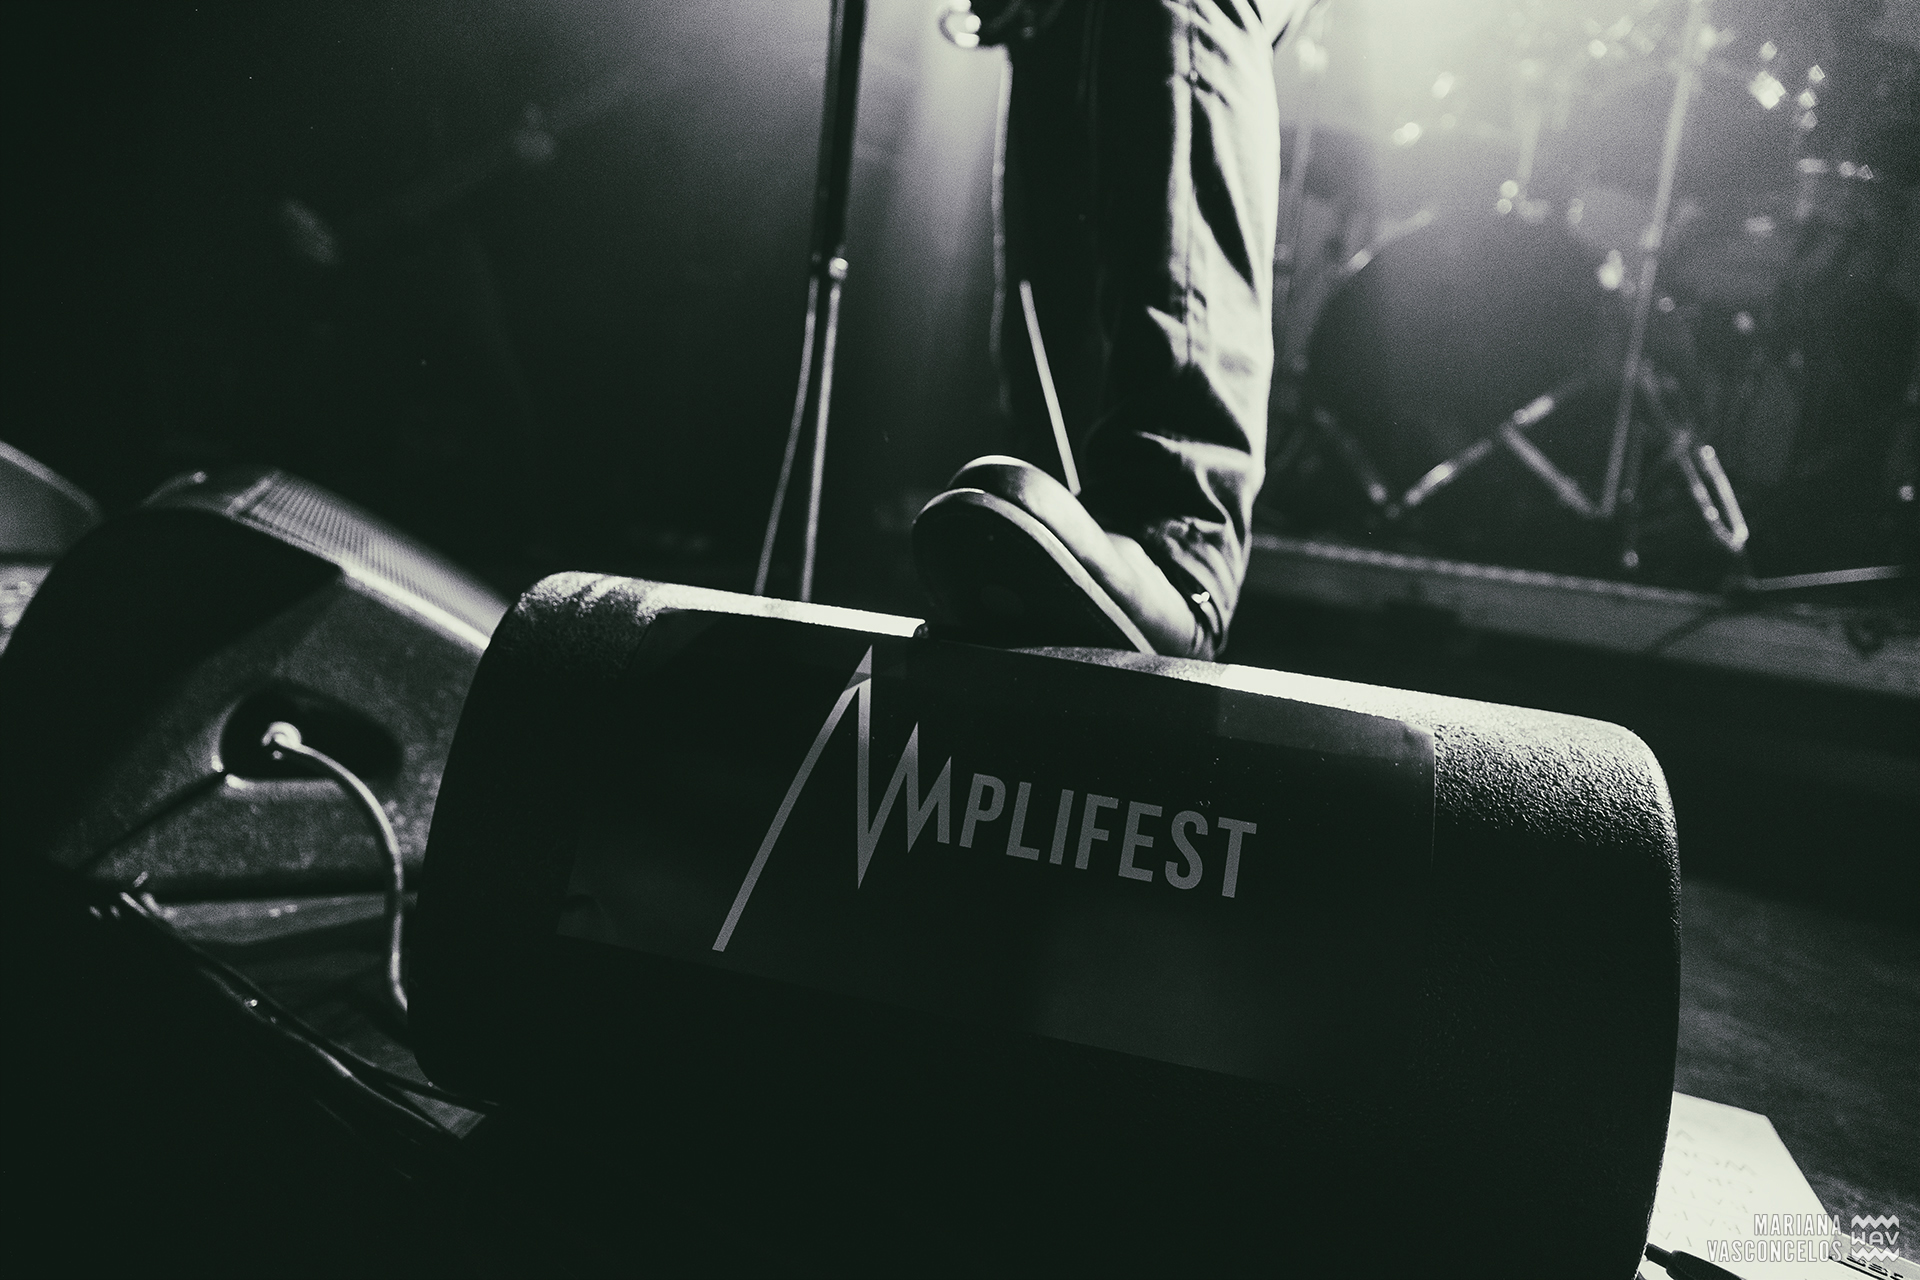 Amplifest 2016 – Vo. 1 – Stronger than any faith that inflicts pain and fear